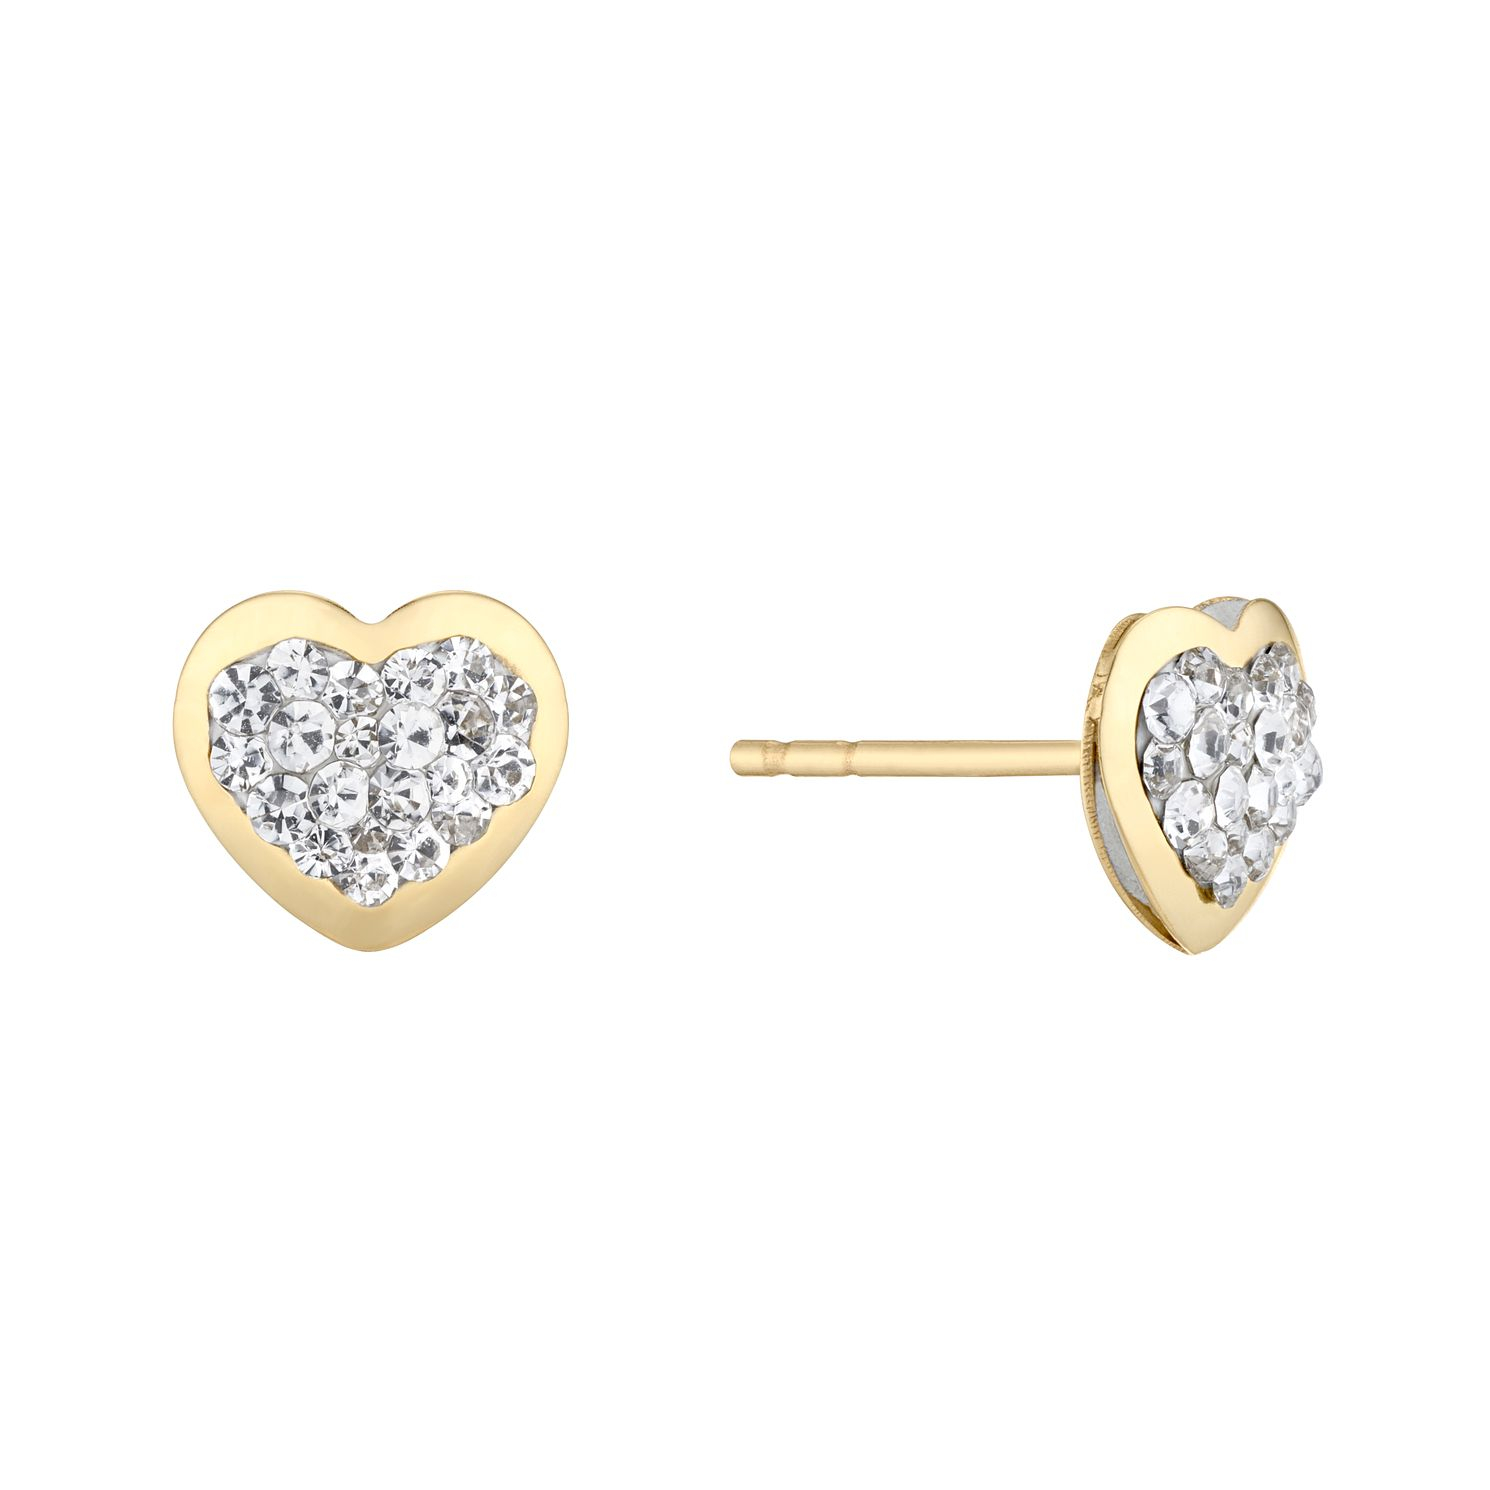 9ct Yellow Gold Crystal Heart Stud Earrings - Product number 5088526